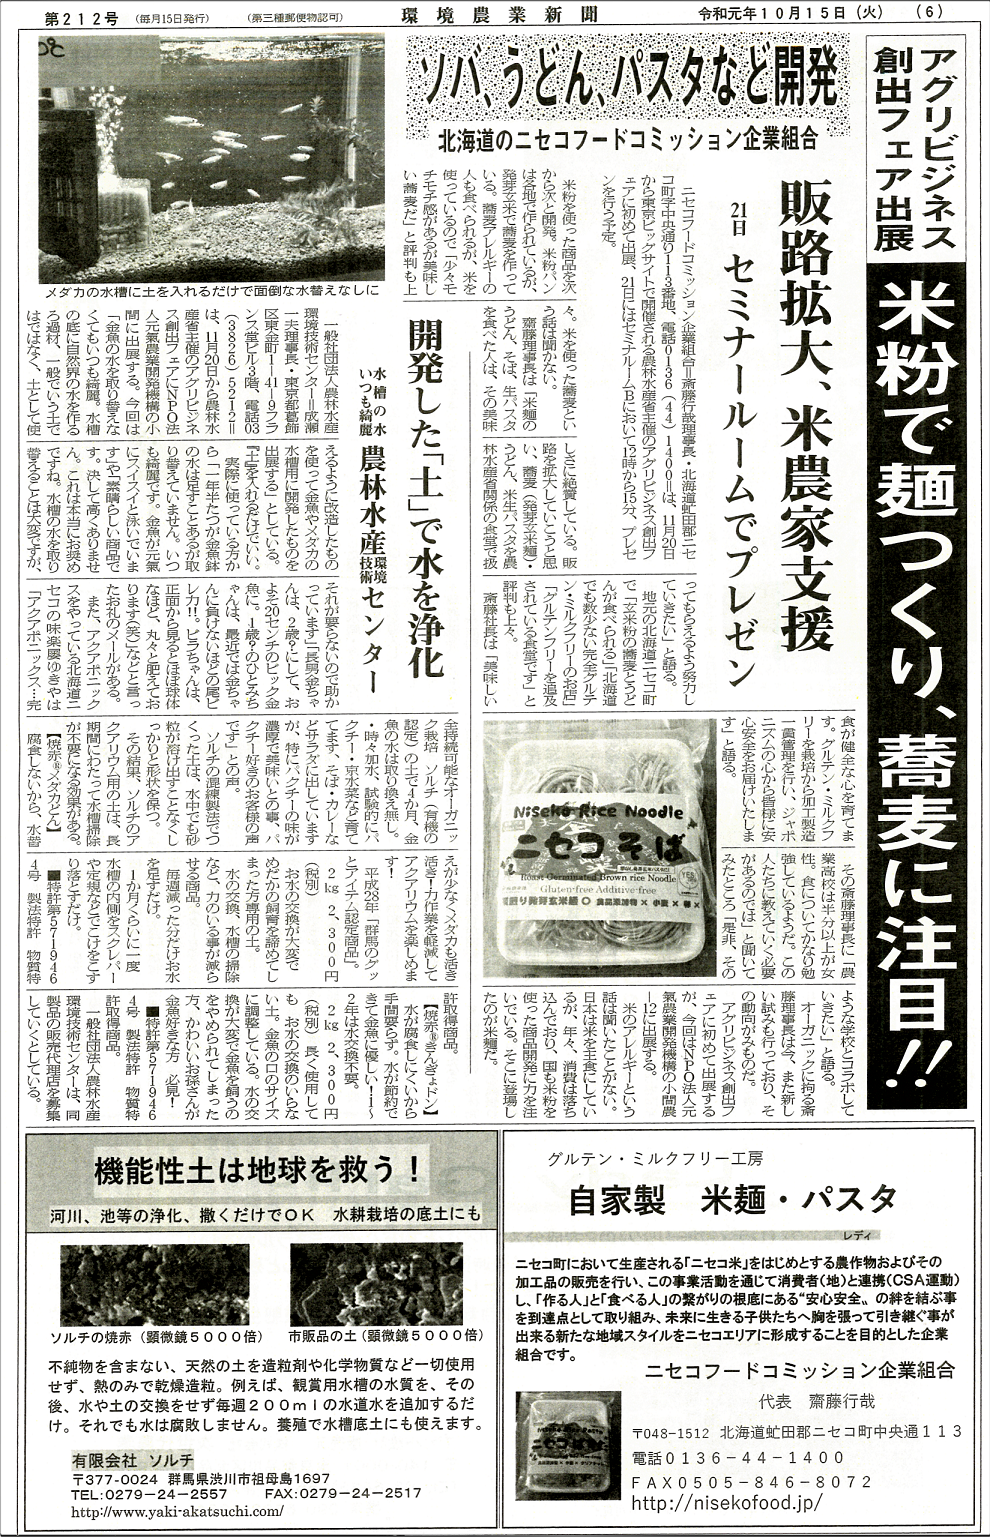 small 環境農業新聞10・15 本紙アグリビジネス創出フェア20191102_13305960_011.png